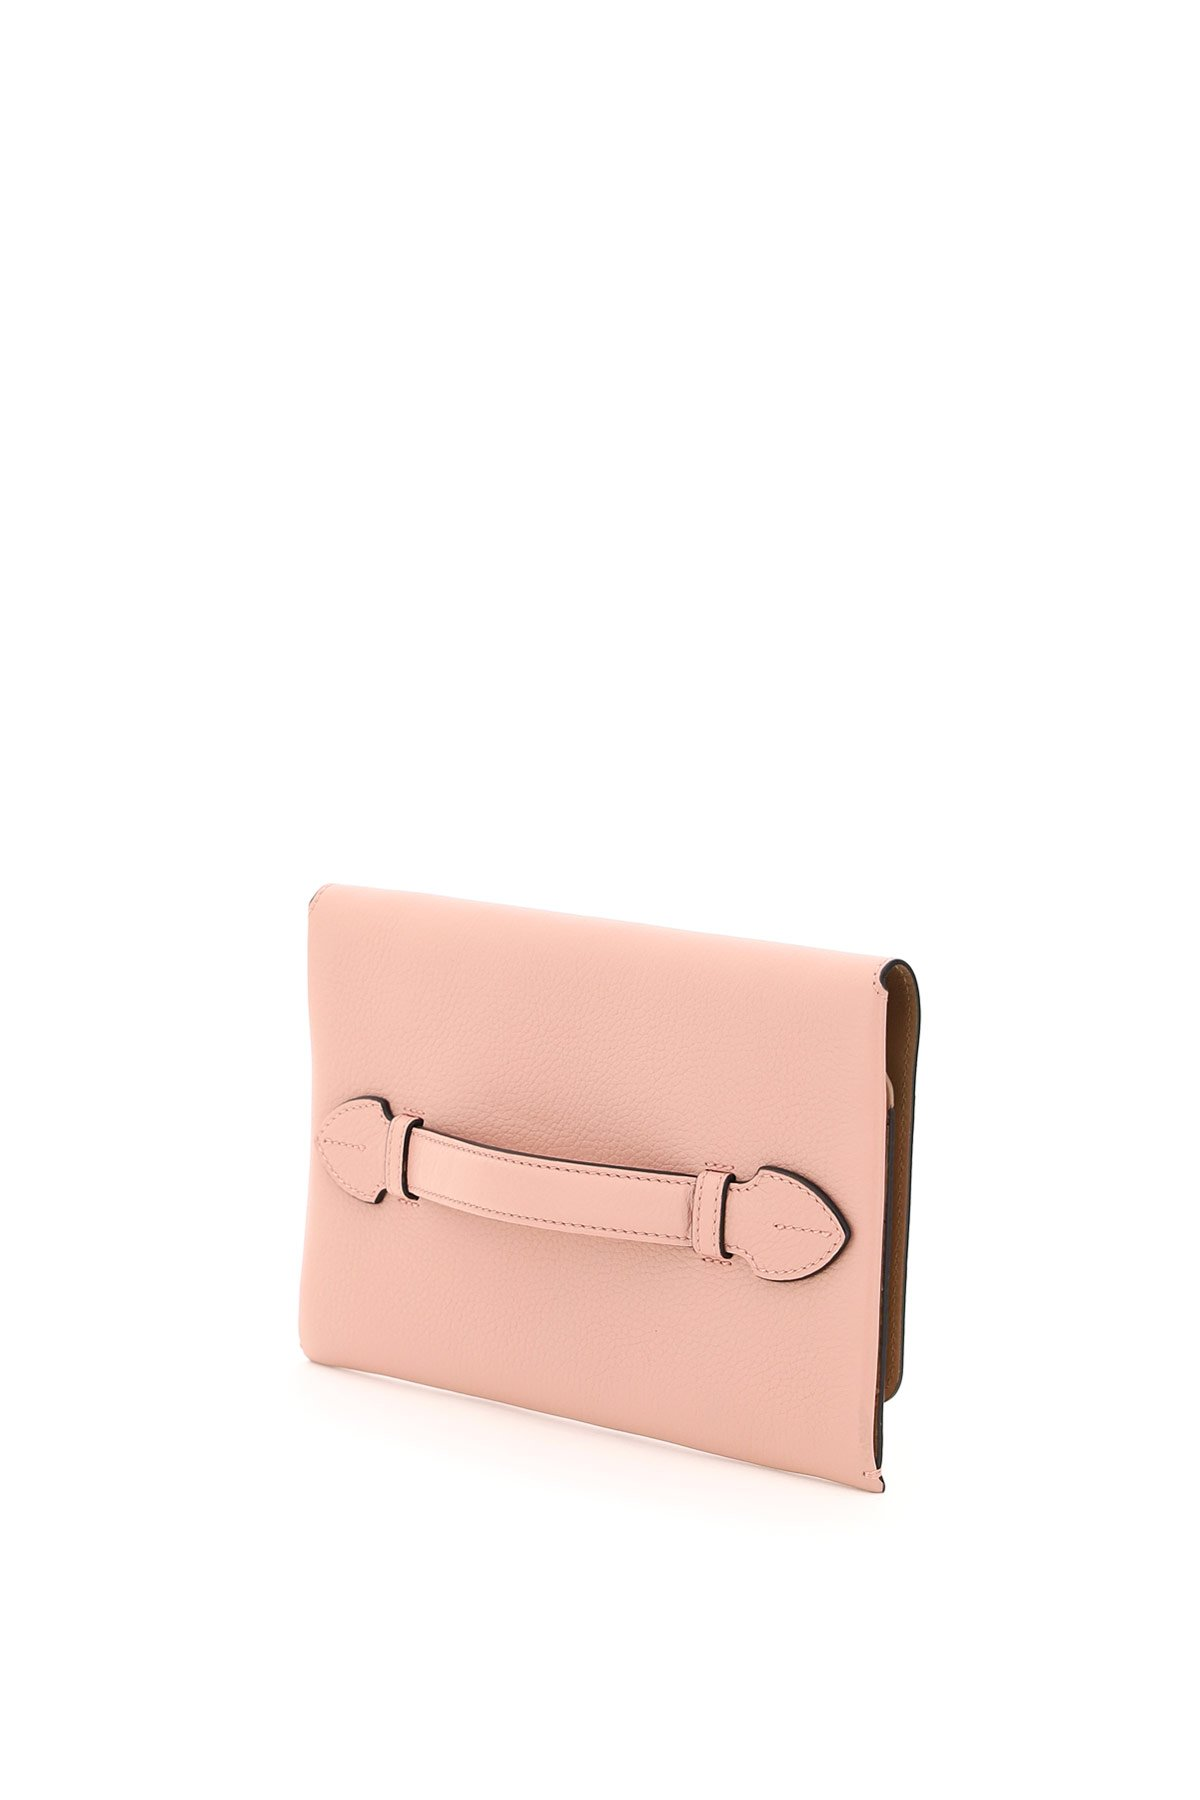 Burberry pouch in pelle pearson